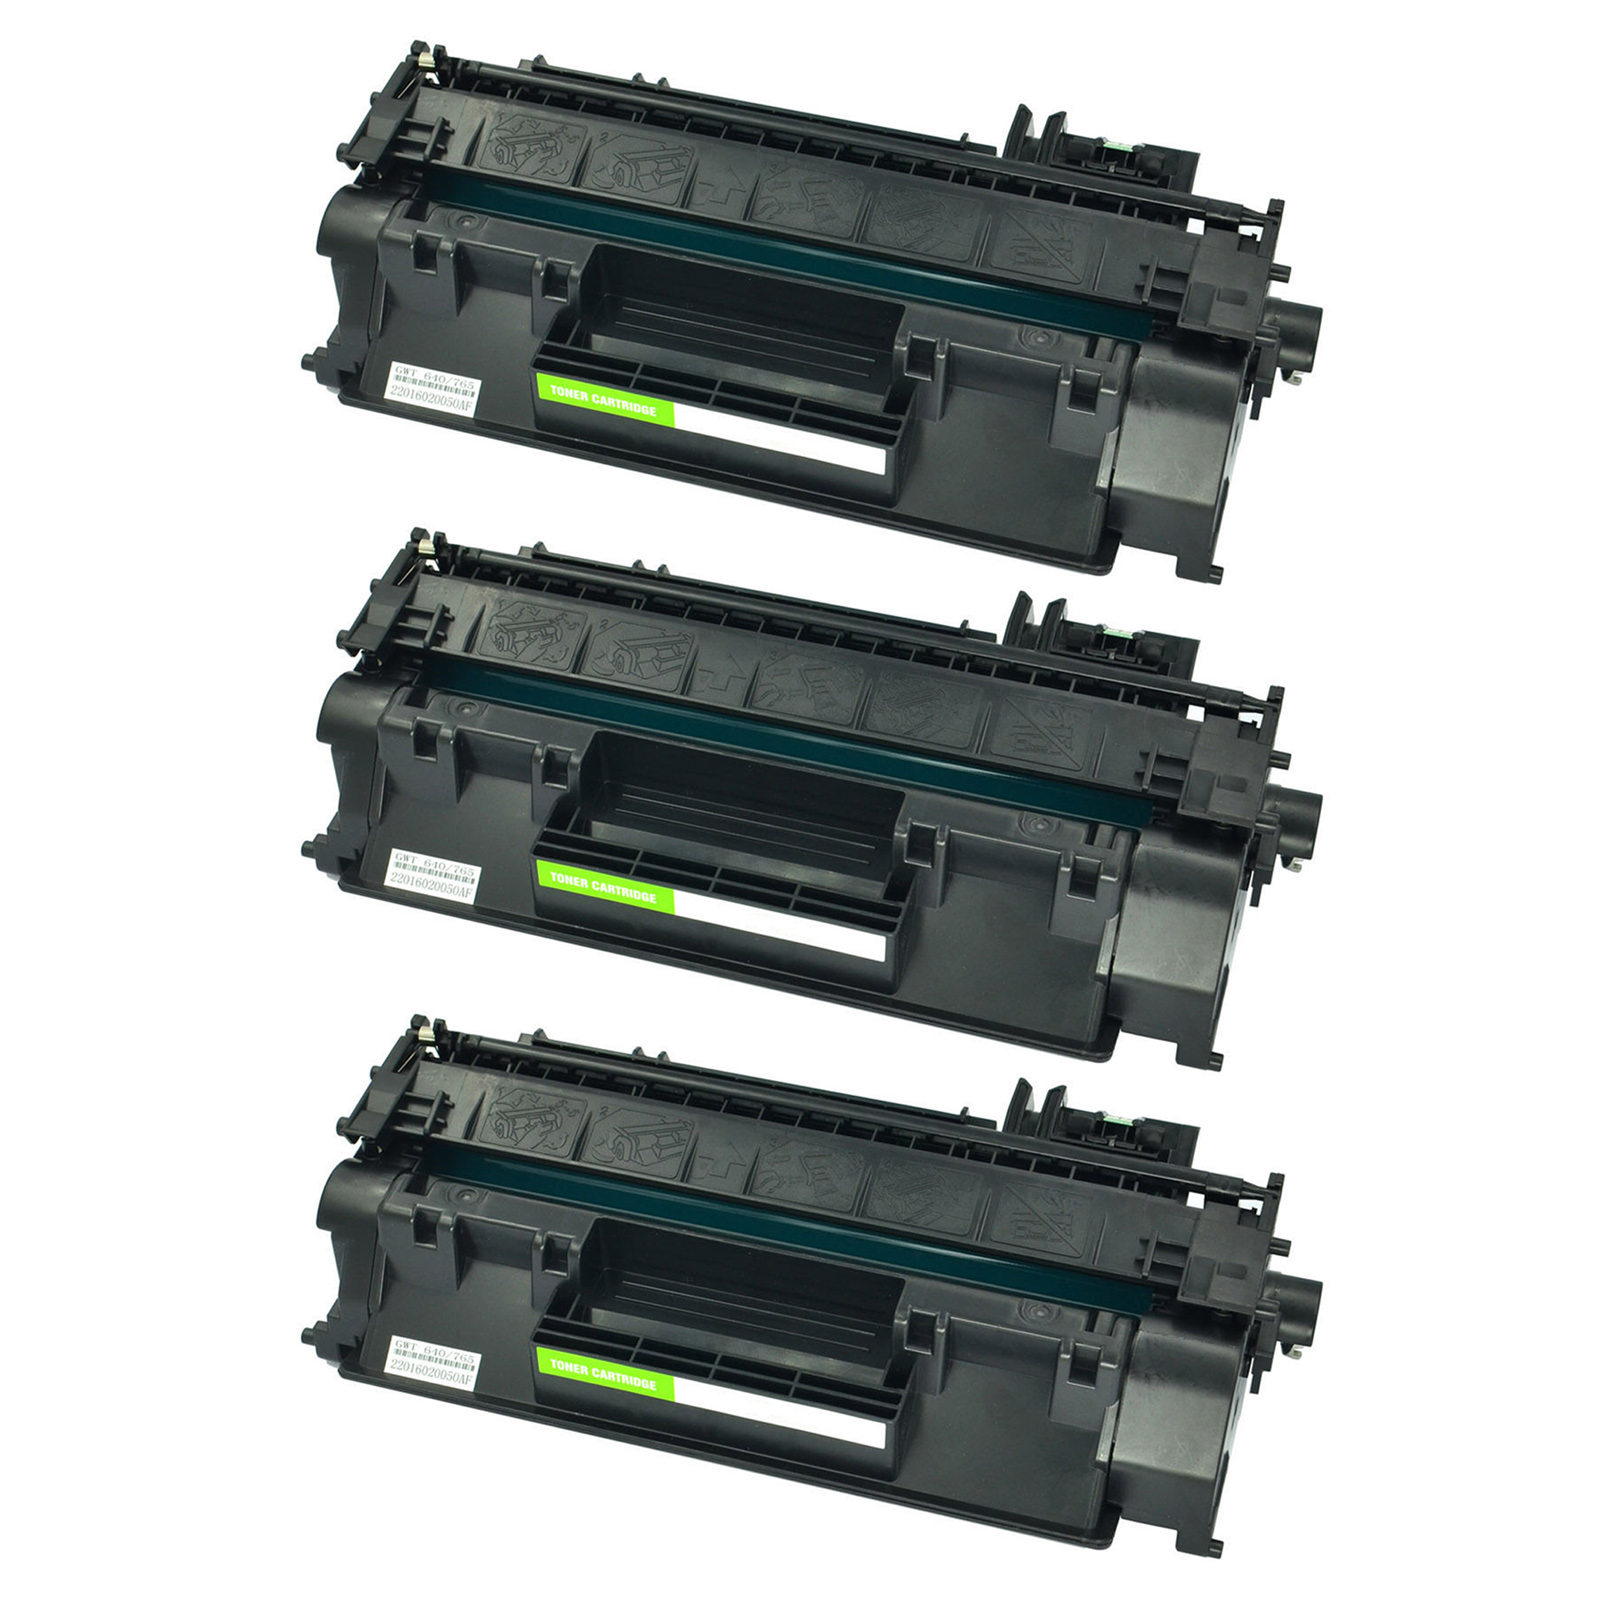 addressing salary requirements in cover letter%0A   Pack Toner Cartridge Black Compatible for Hp CF   A  A Laserjet Pro      M   dn